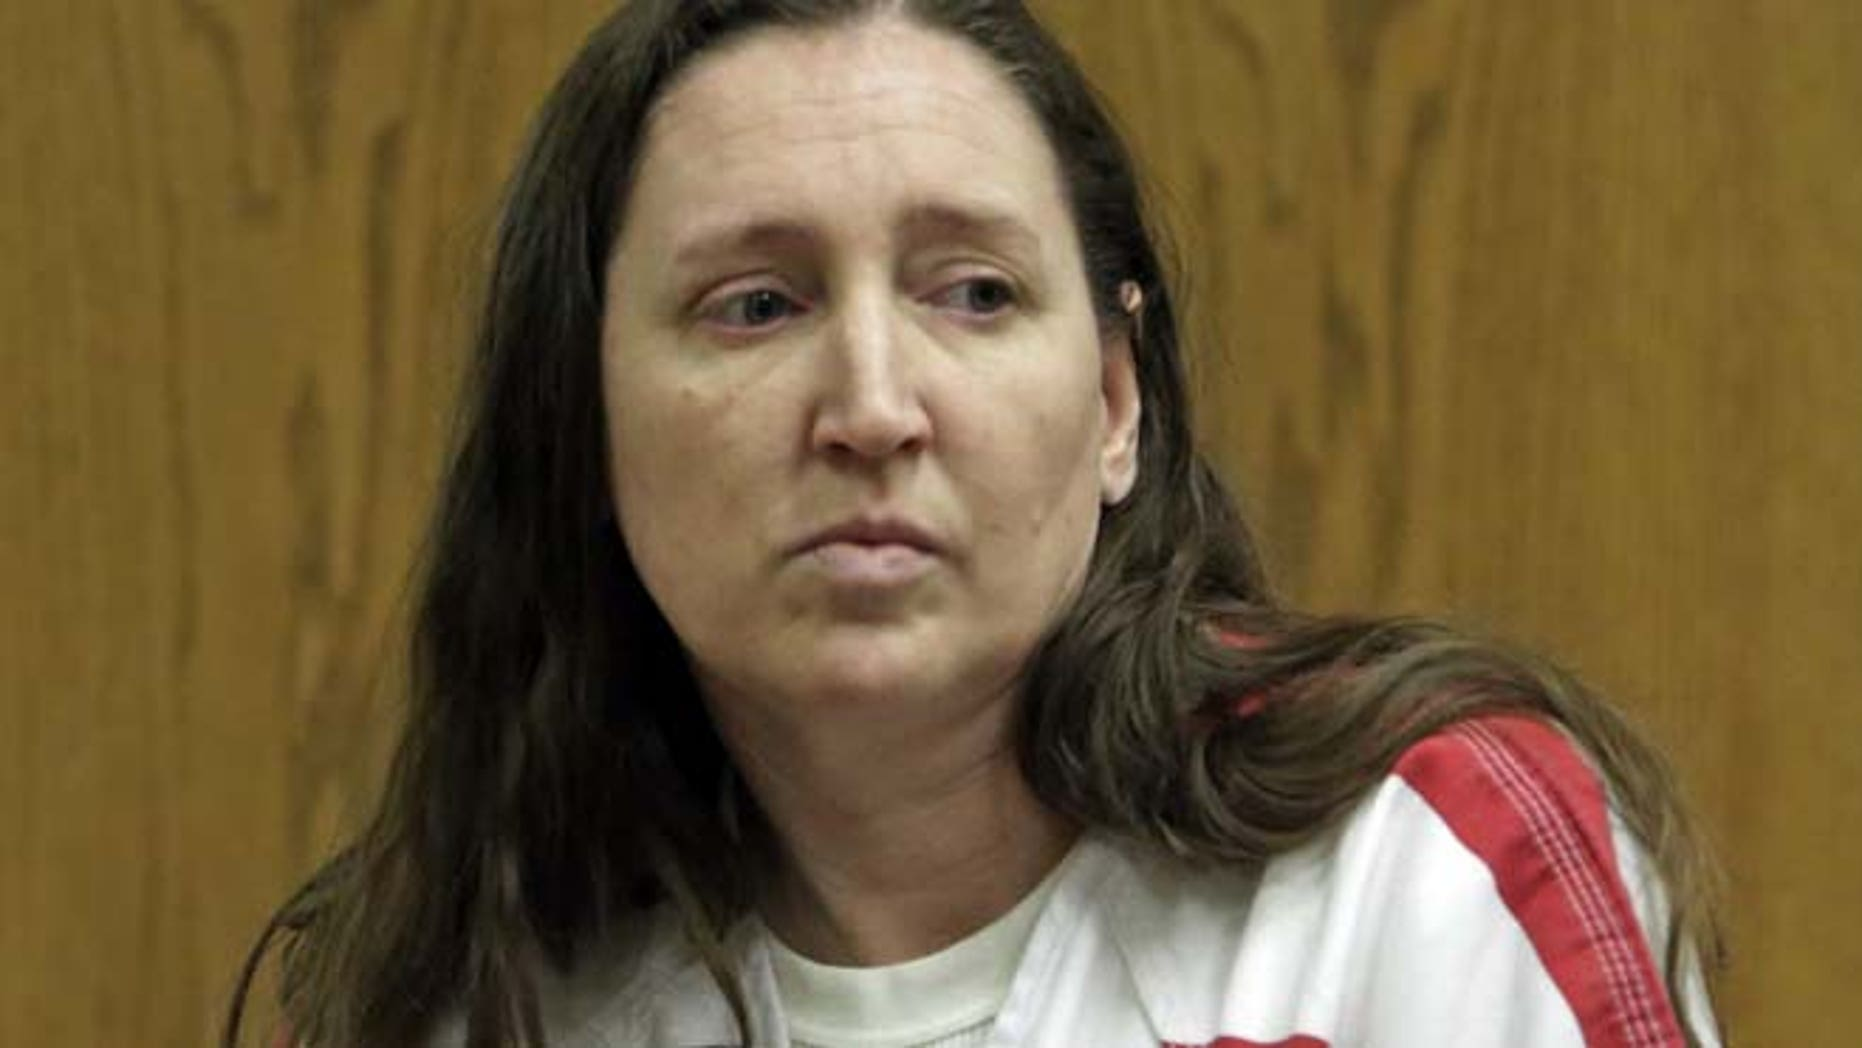 FILE 2014: Megan Huntsman, 39, entered six guilty pleas Thursday morning in a court in Provo.